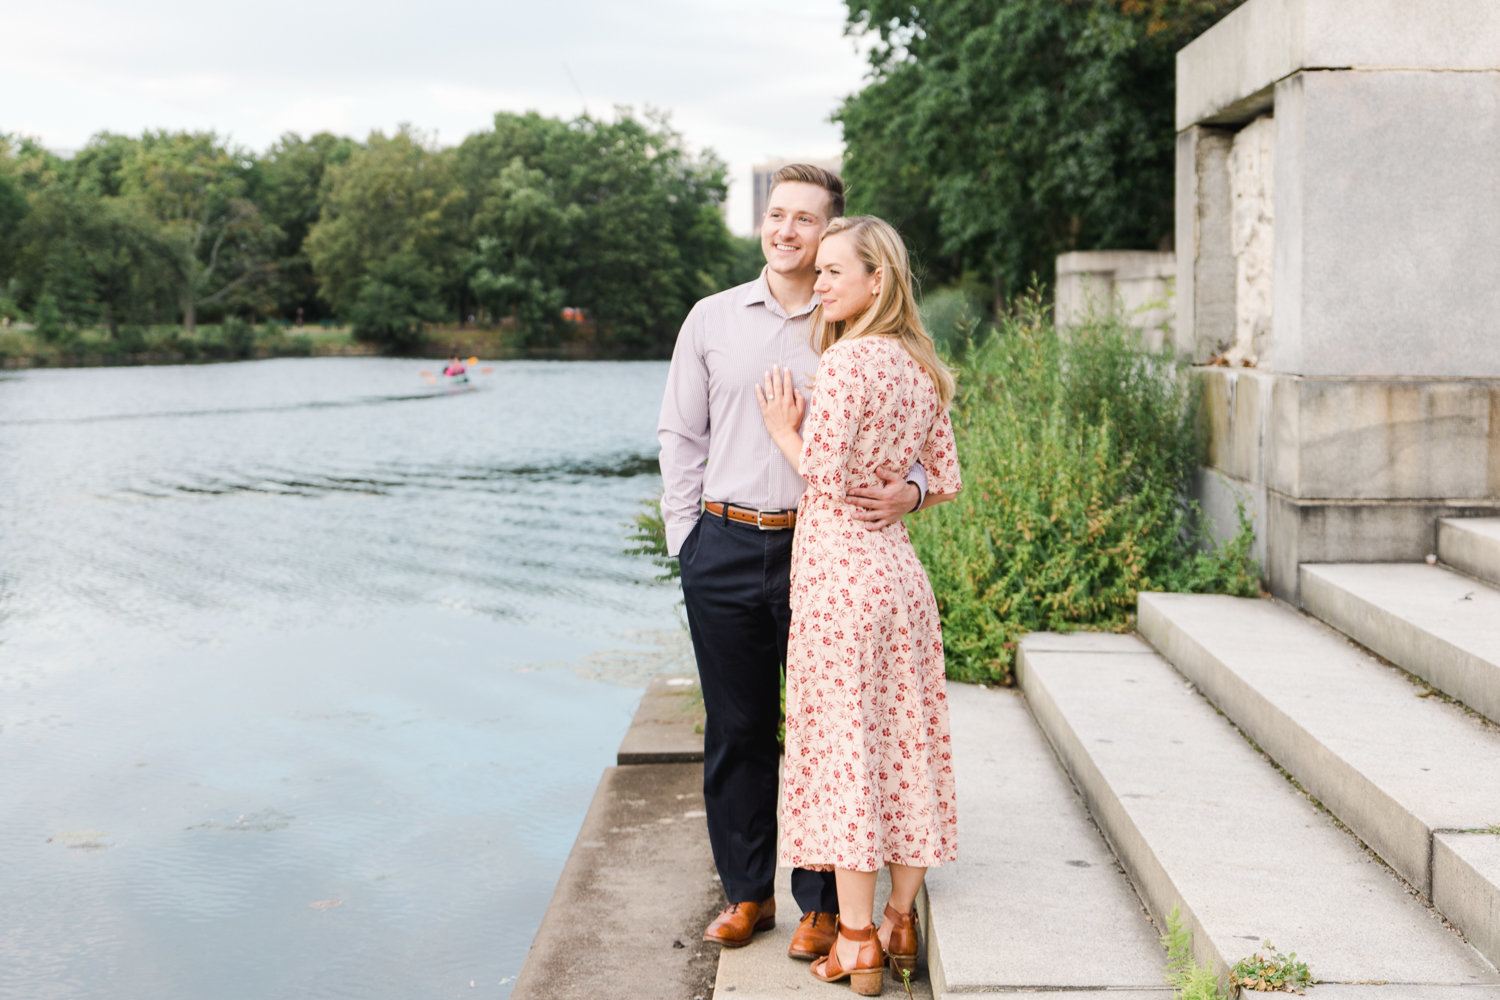 Alisha-Norden-Photography-Beacon-Hill-Engagement-Session-35